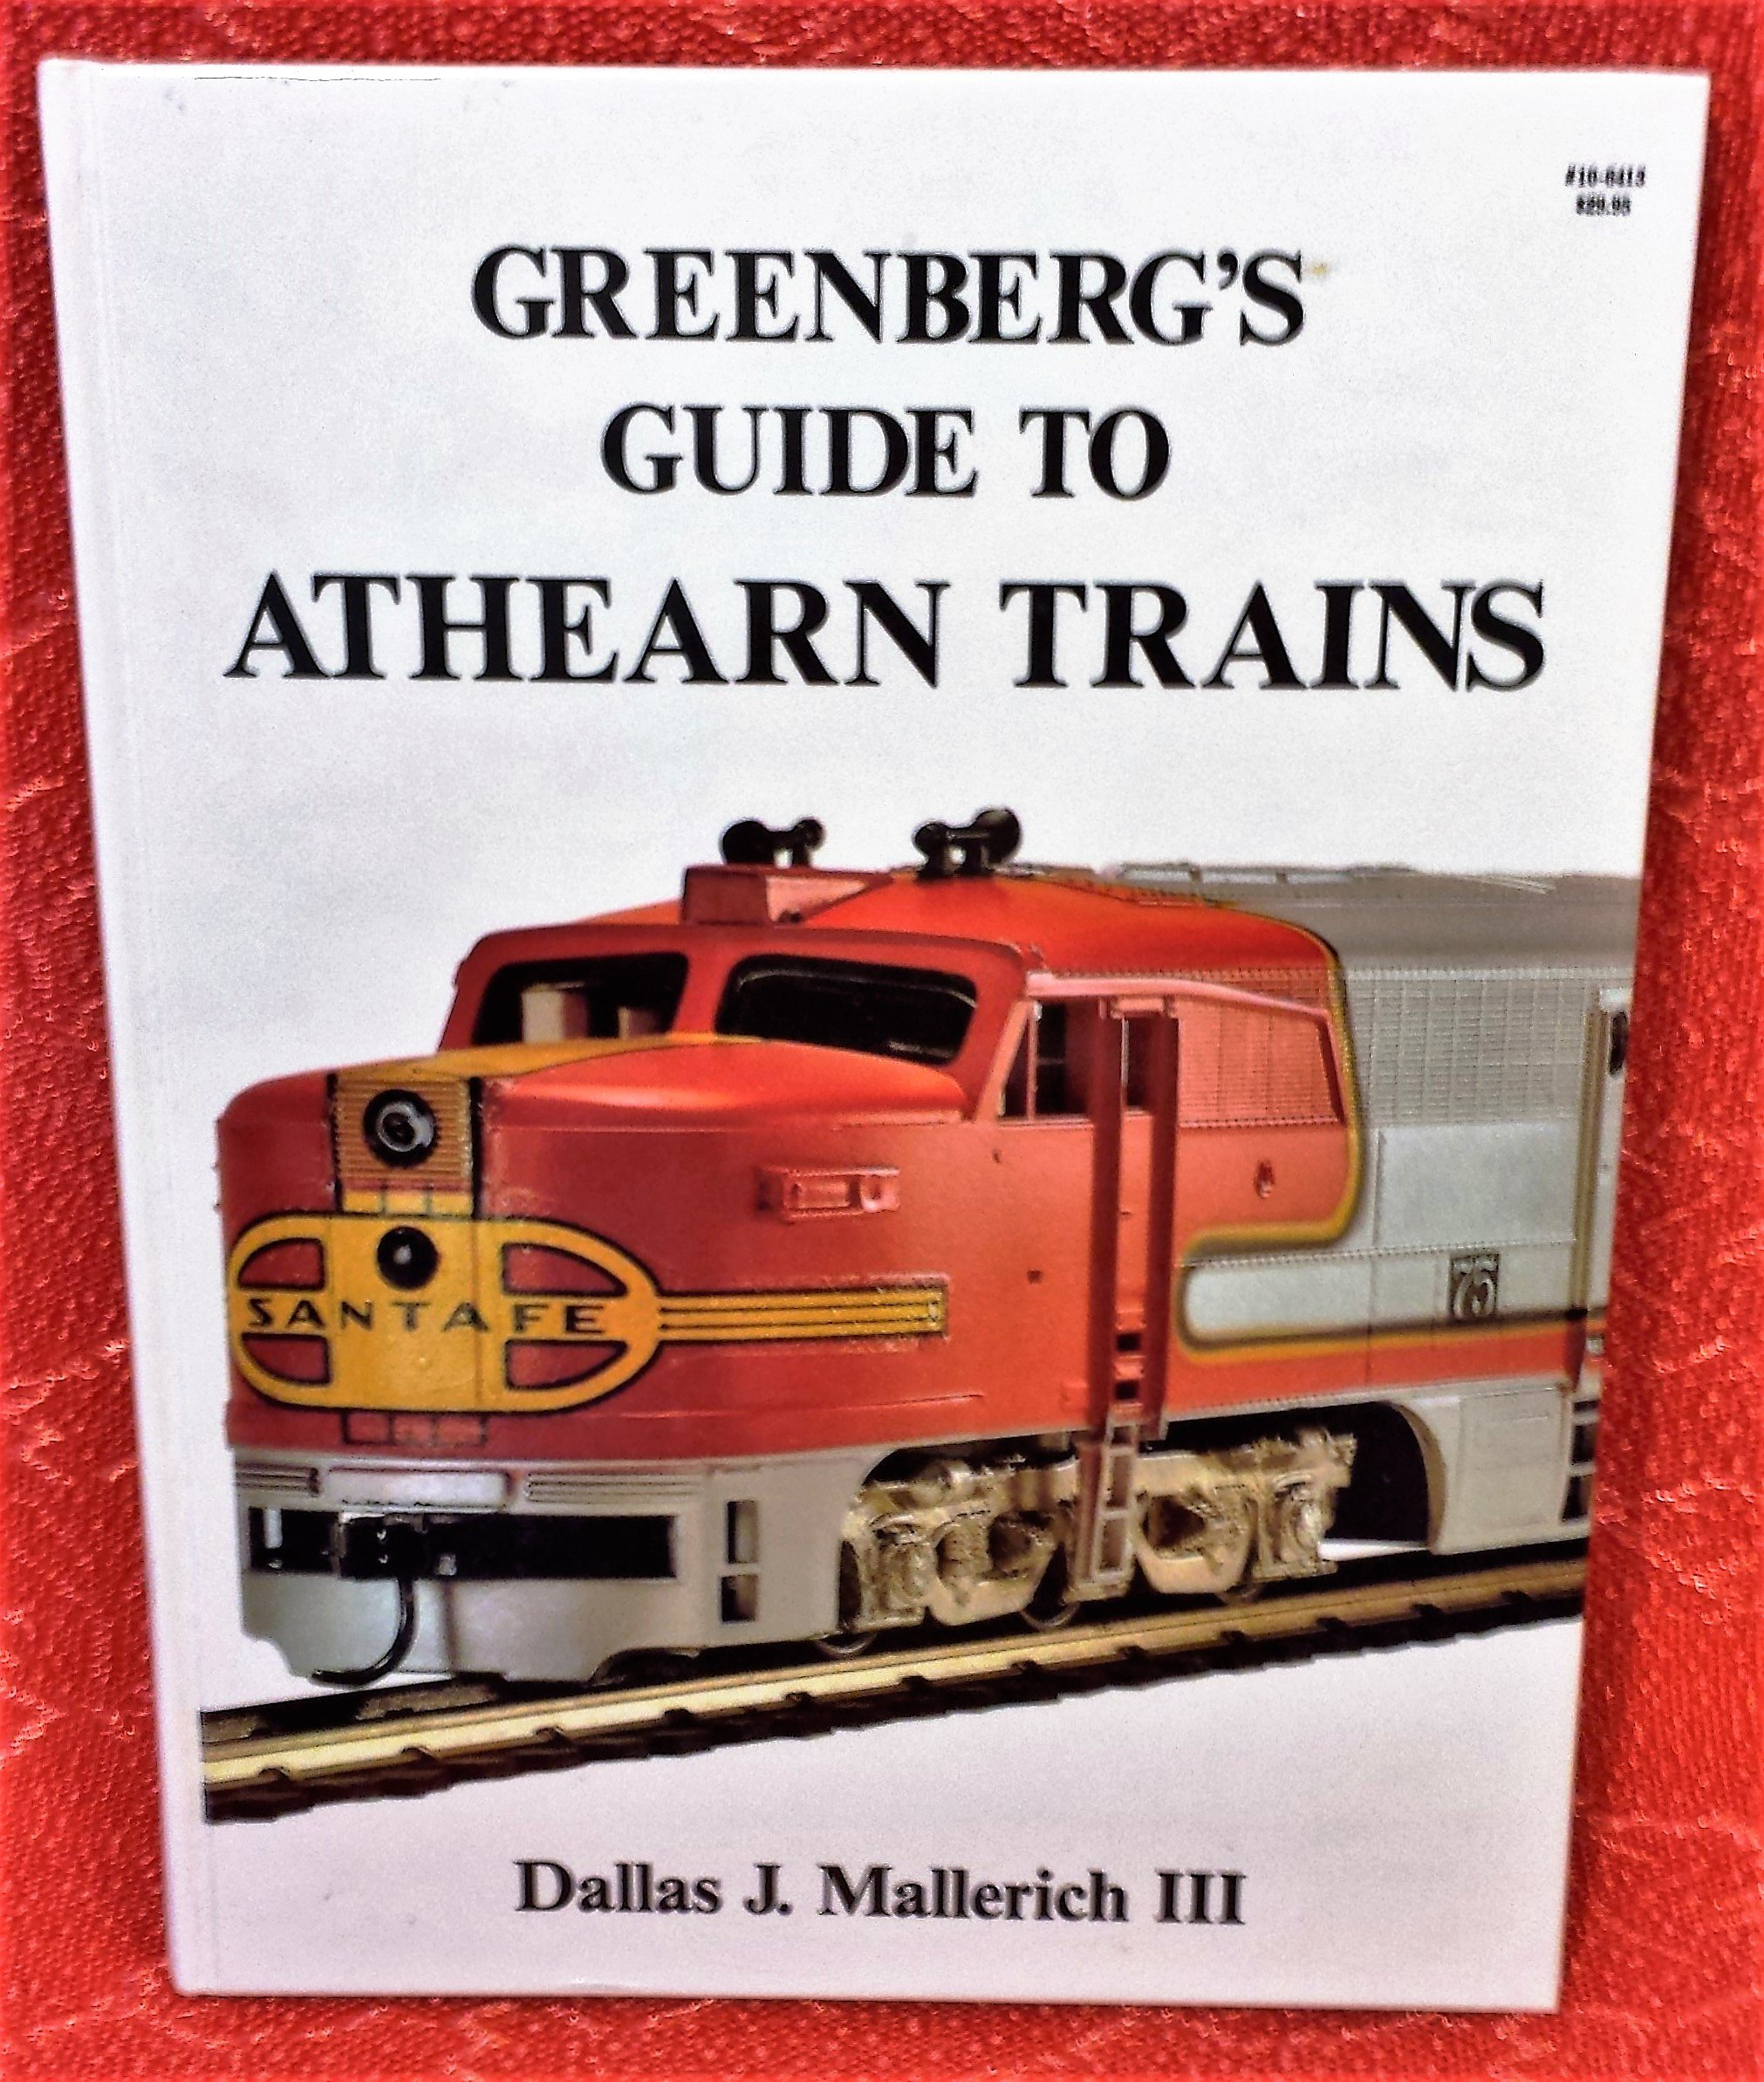 Greenberg's Guide to Athearn Trains